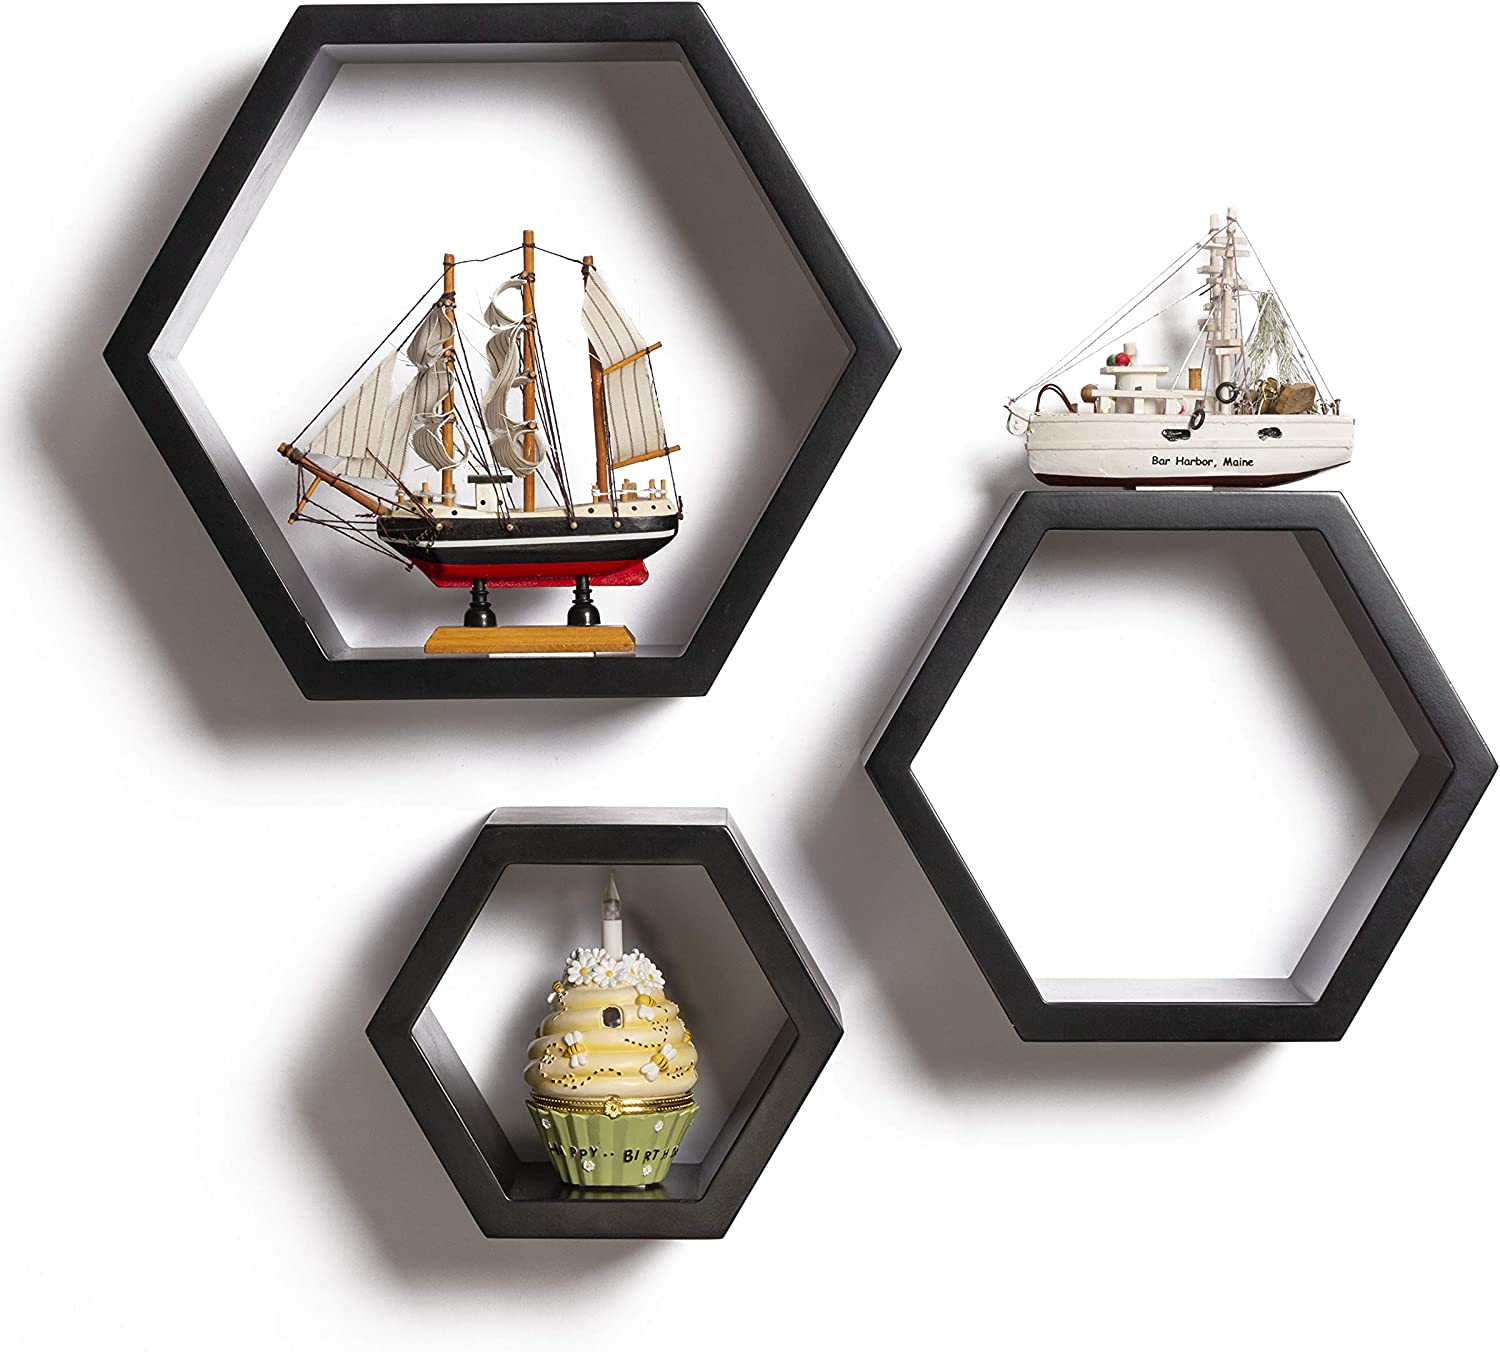 Hexagon Floating Shelves – Modern Honeycomb Shelves – Wall Mounted Geometric Wood Decor for Living Room, Kitchen and Bedroom – Screws and Anchors Included (Black, Set of 3)